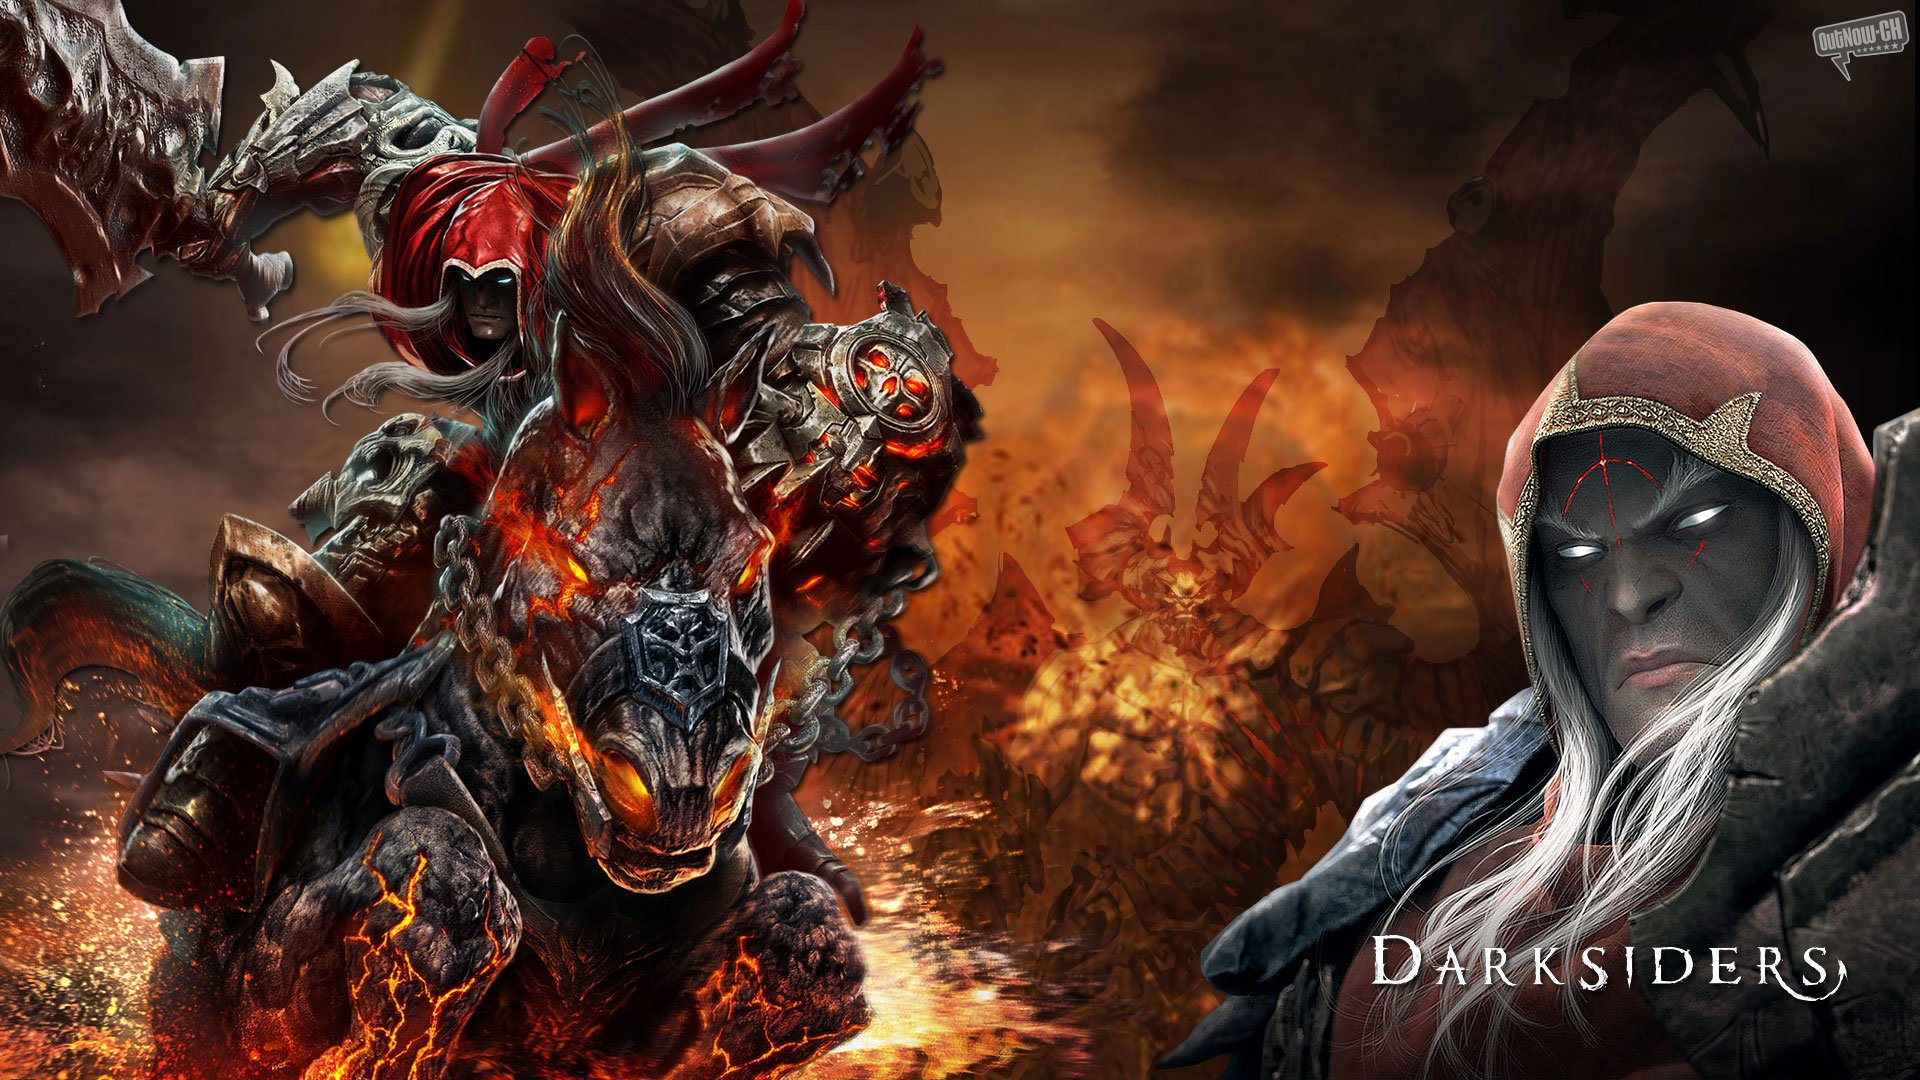 War Darksiders wallpaper 181724 1920x1080